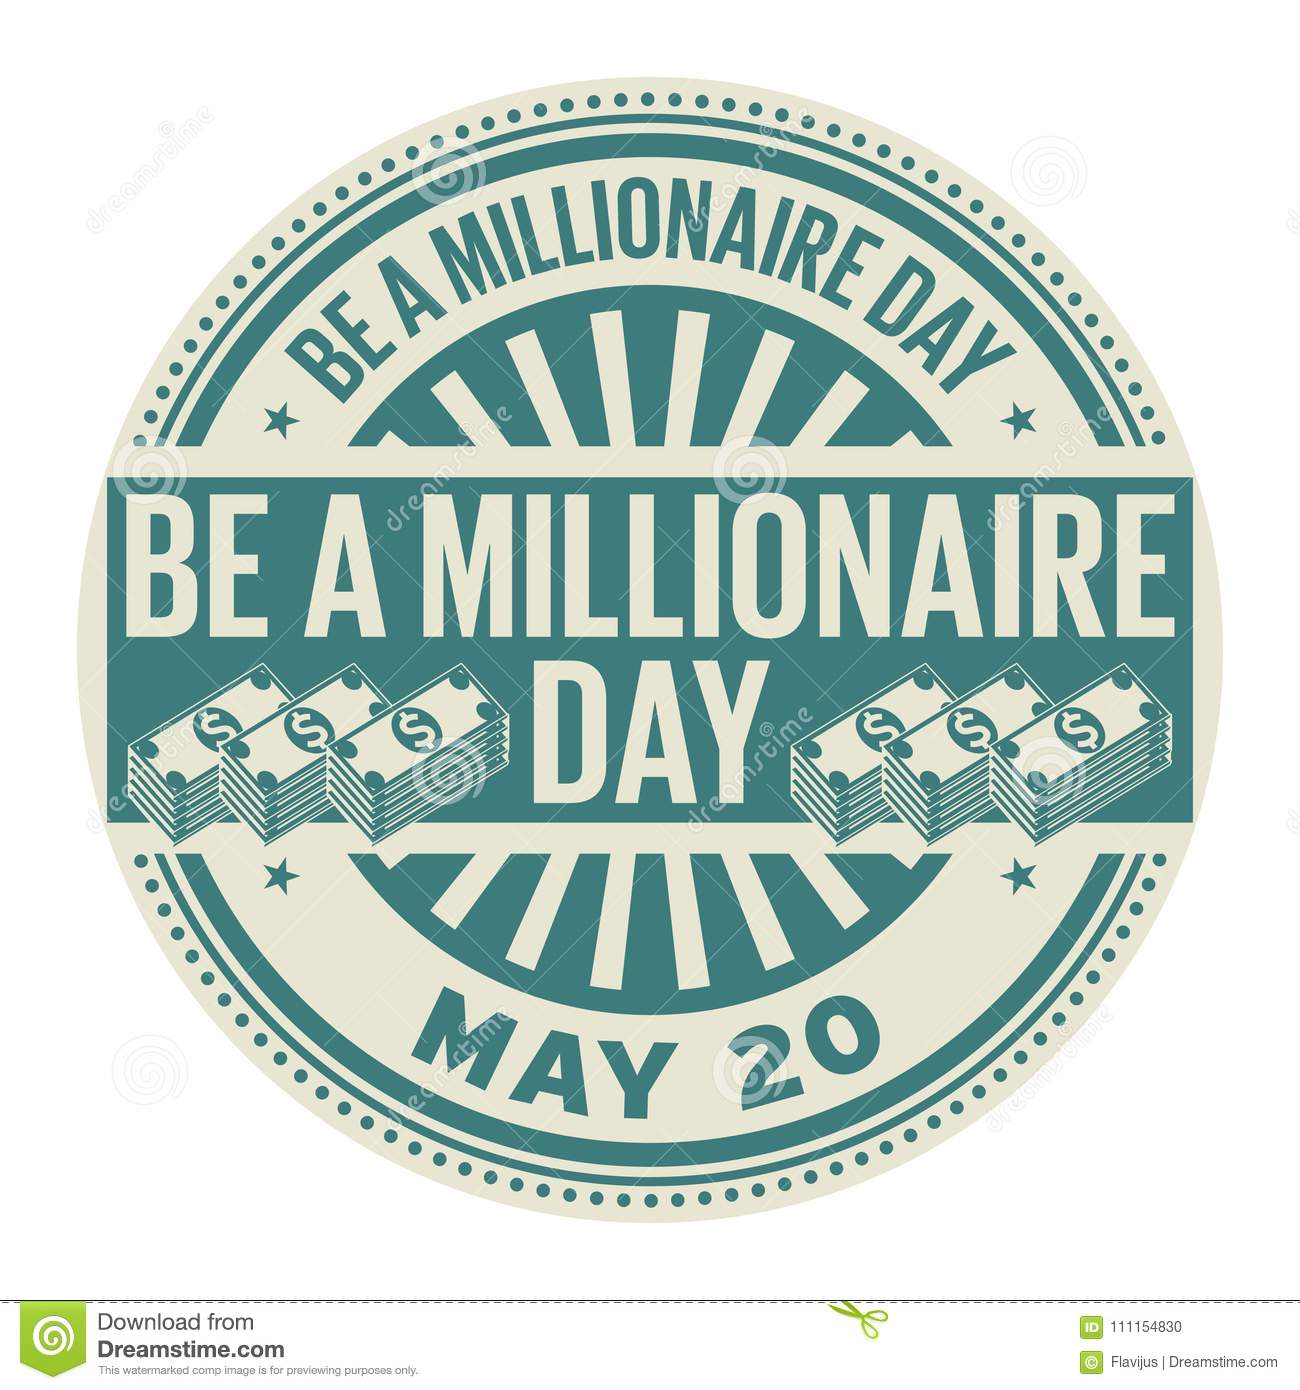 Image result for be a millionaire day may 20